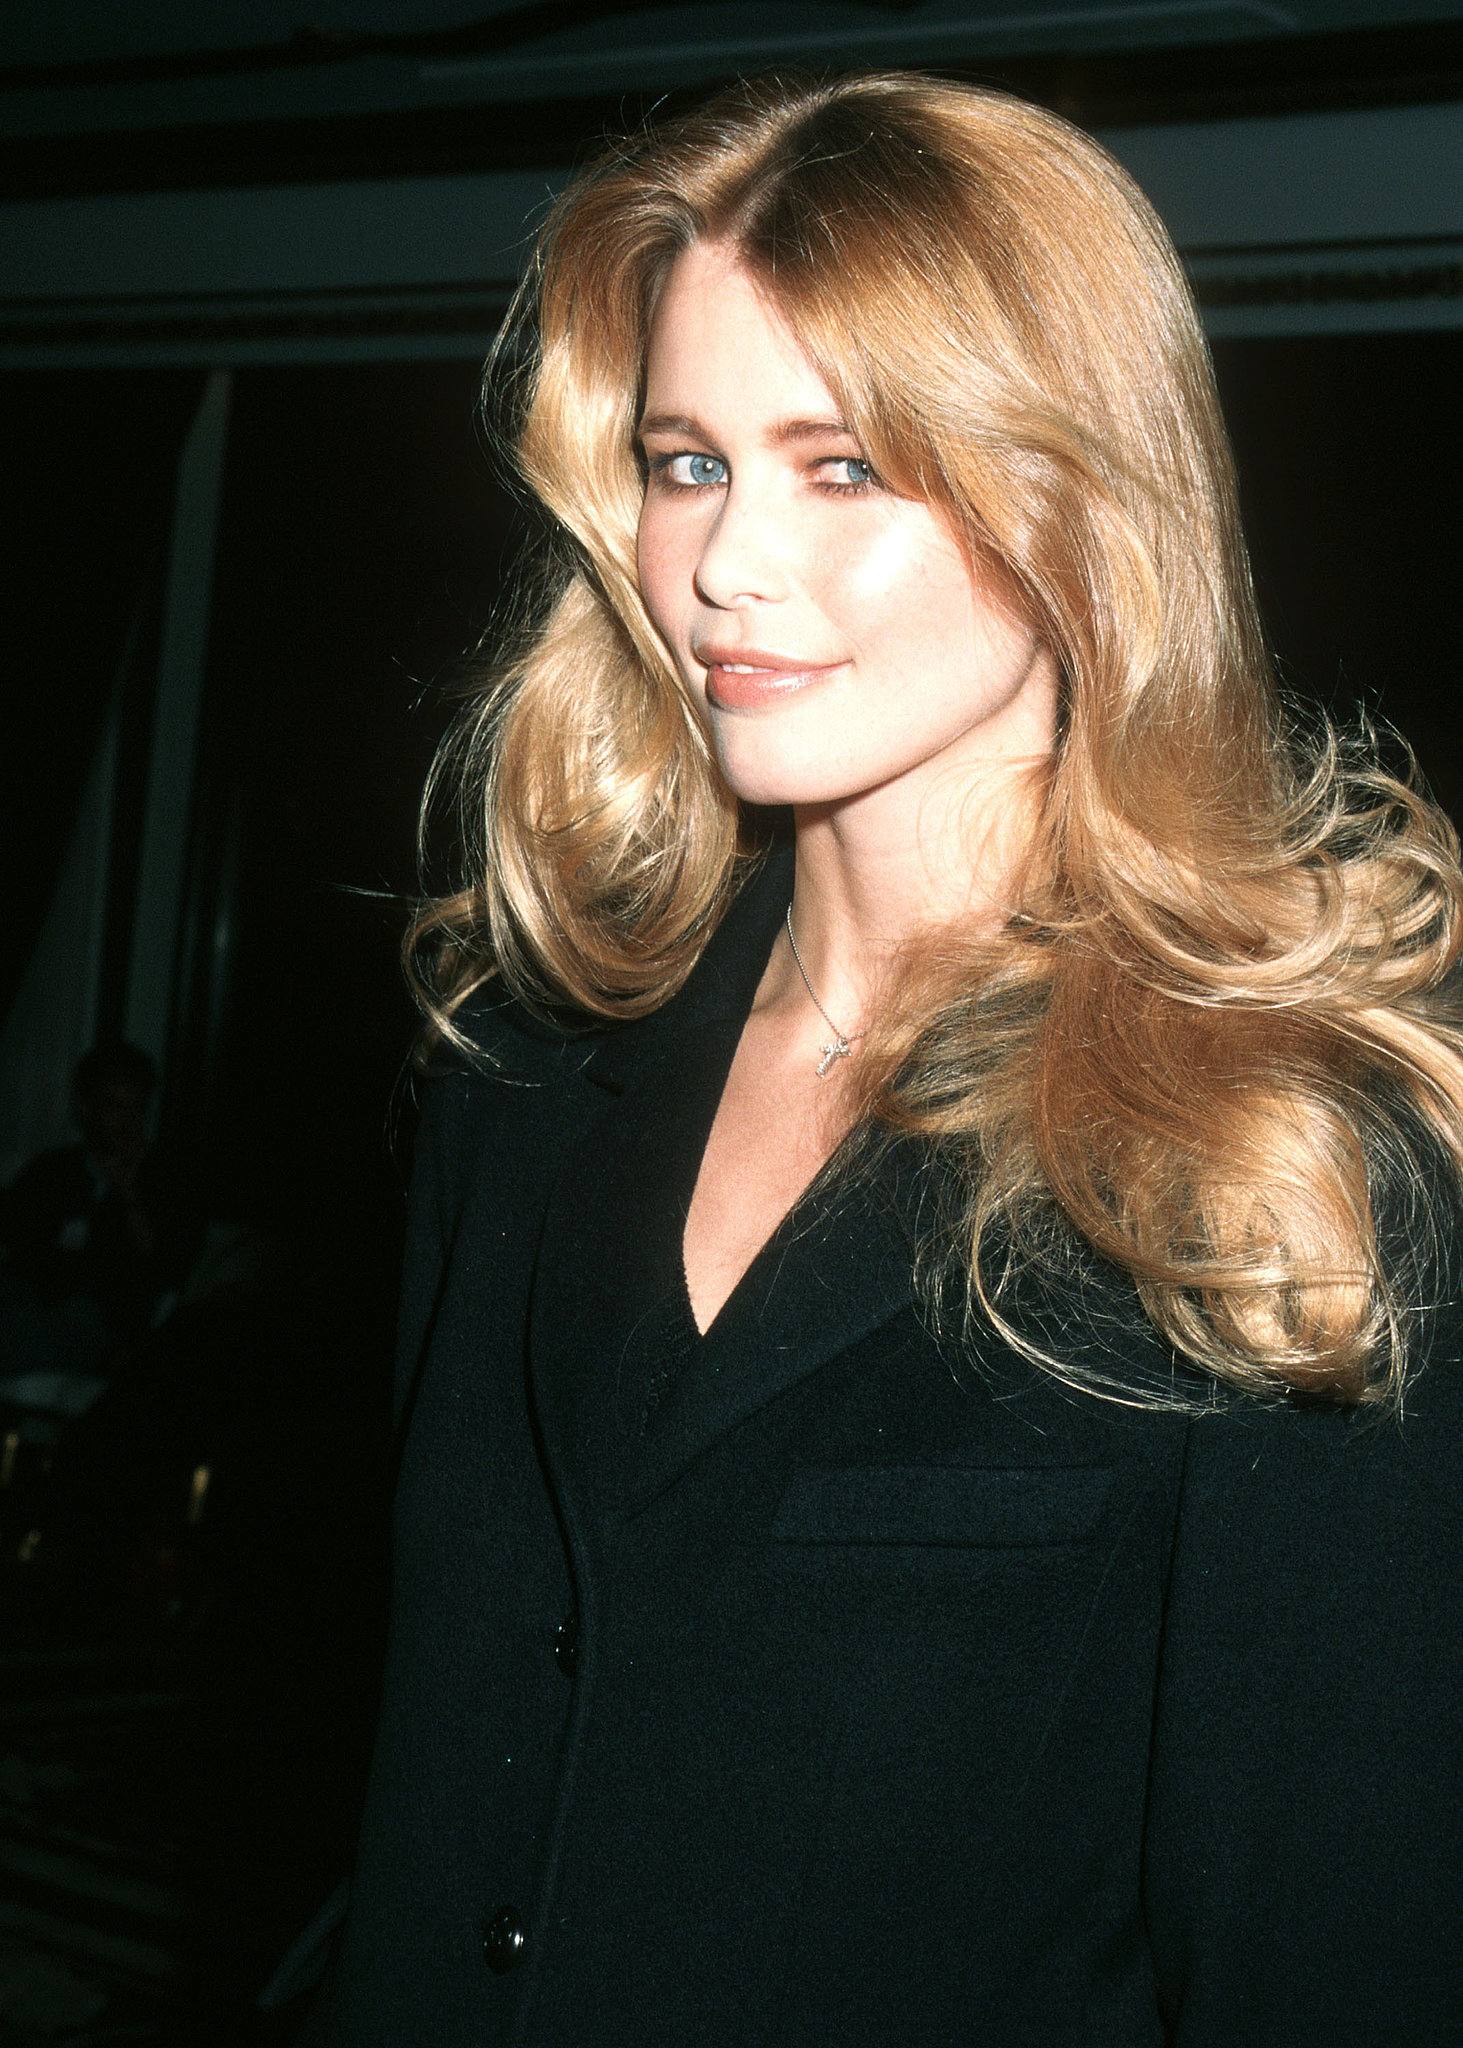 A young Claudia Schiffer smiled for the camera while backstage in 1997.